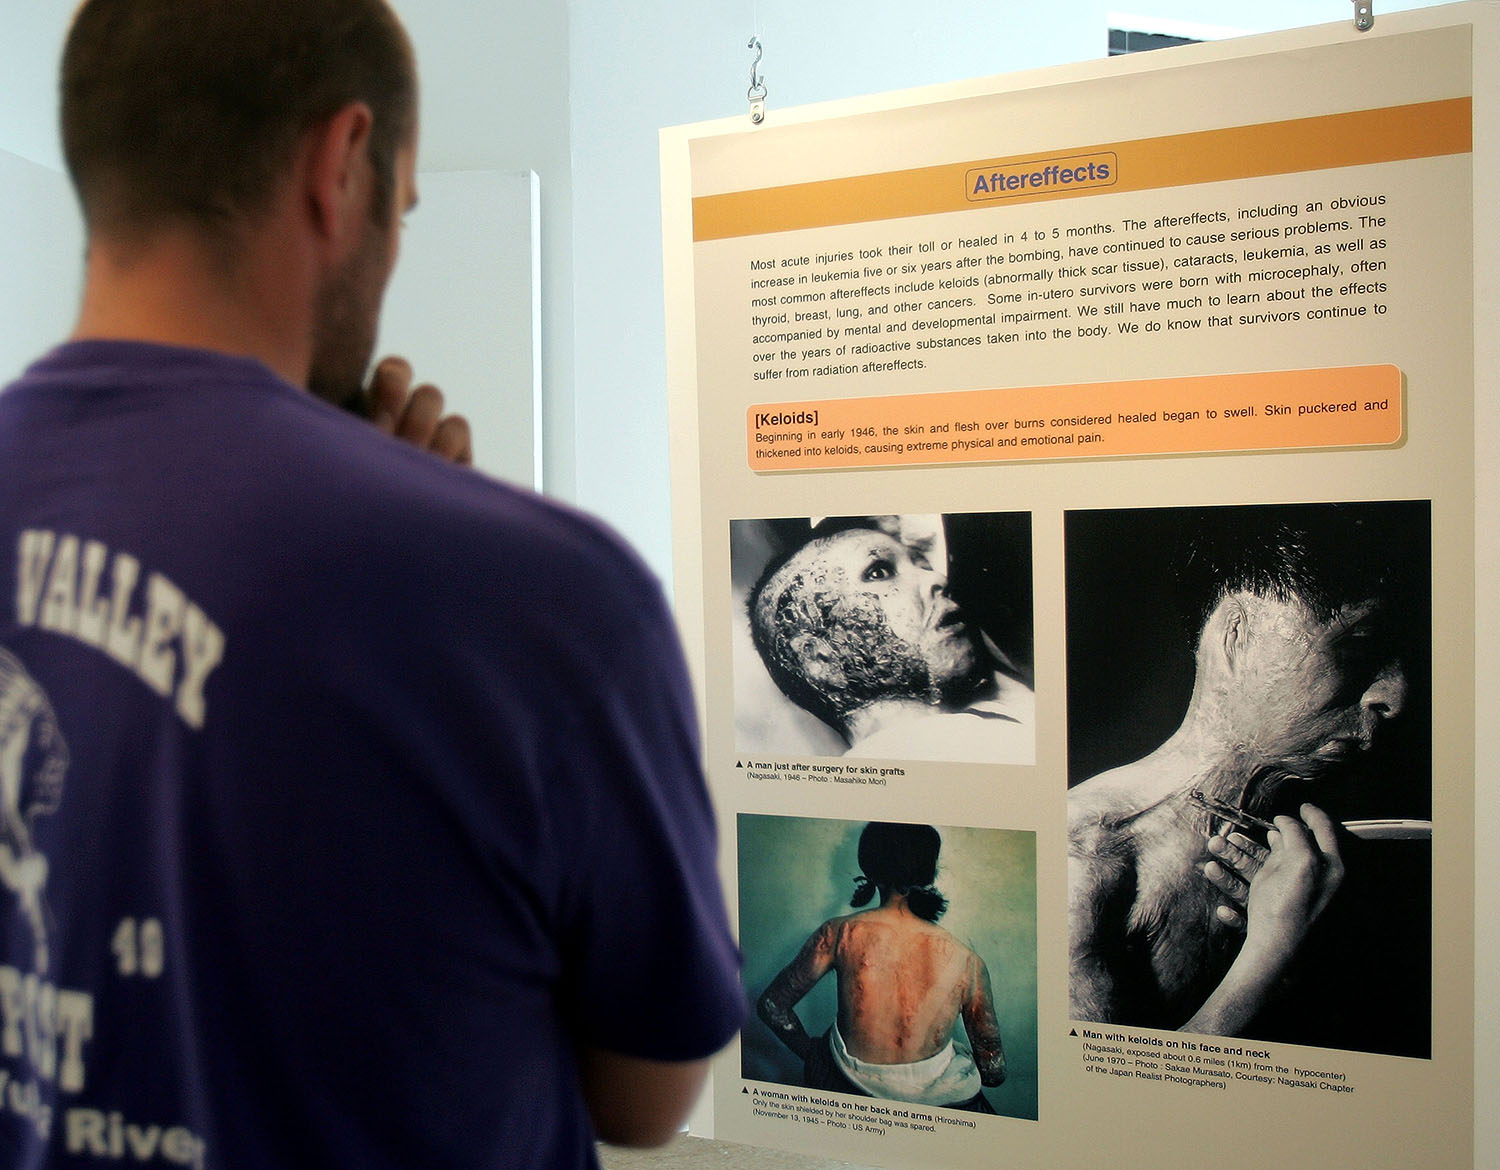 """An informational panel describing the aftereffects of the A-Bomb at an exhibit titled """"60 Years Later: The Hiroshima-Nagasaki A-Bomb Exhibition"""" at Chicago's Peace Museum, in collaboration with the Nagasaki Peace Memorial Hall and the Hiroshima Peace Memorial Museum, in 2005. (Credit: Tim Boyle/Getty Images)"""